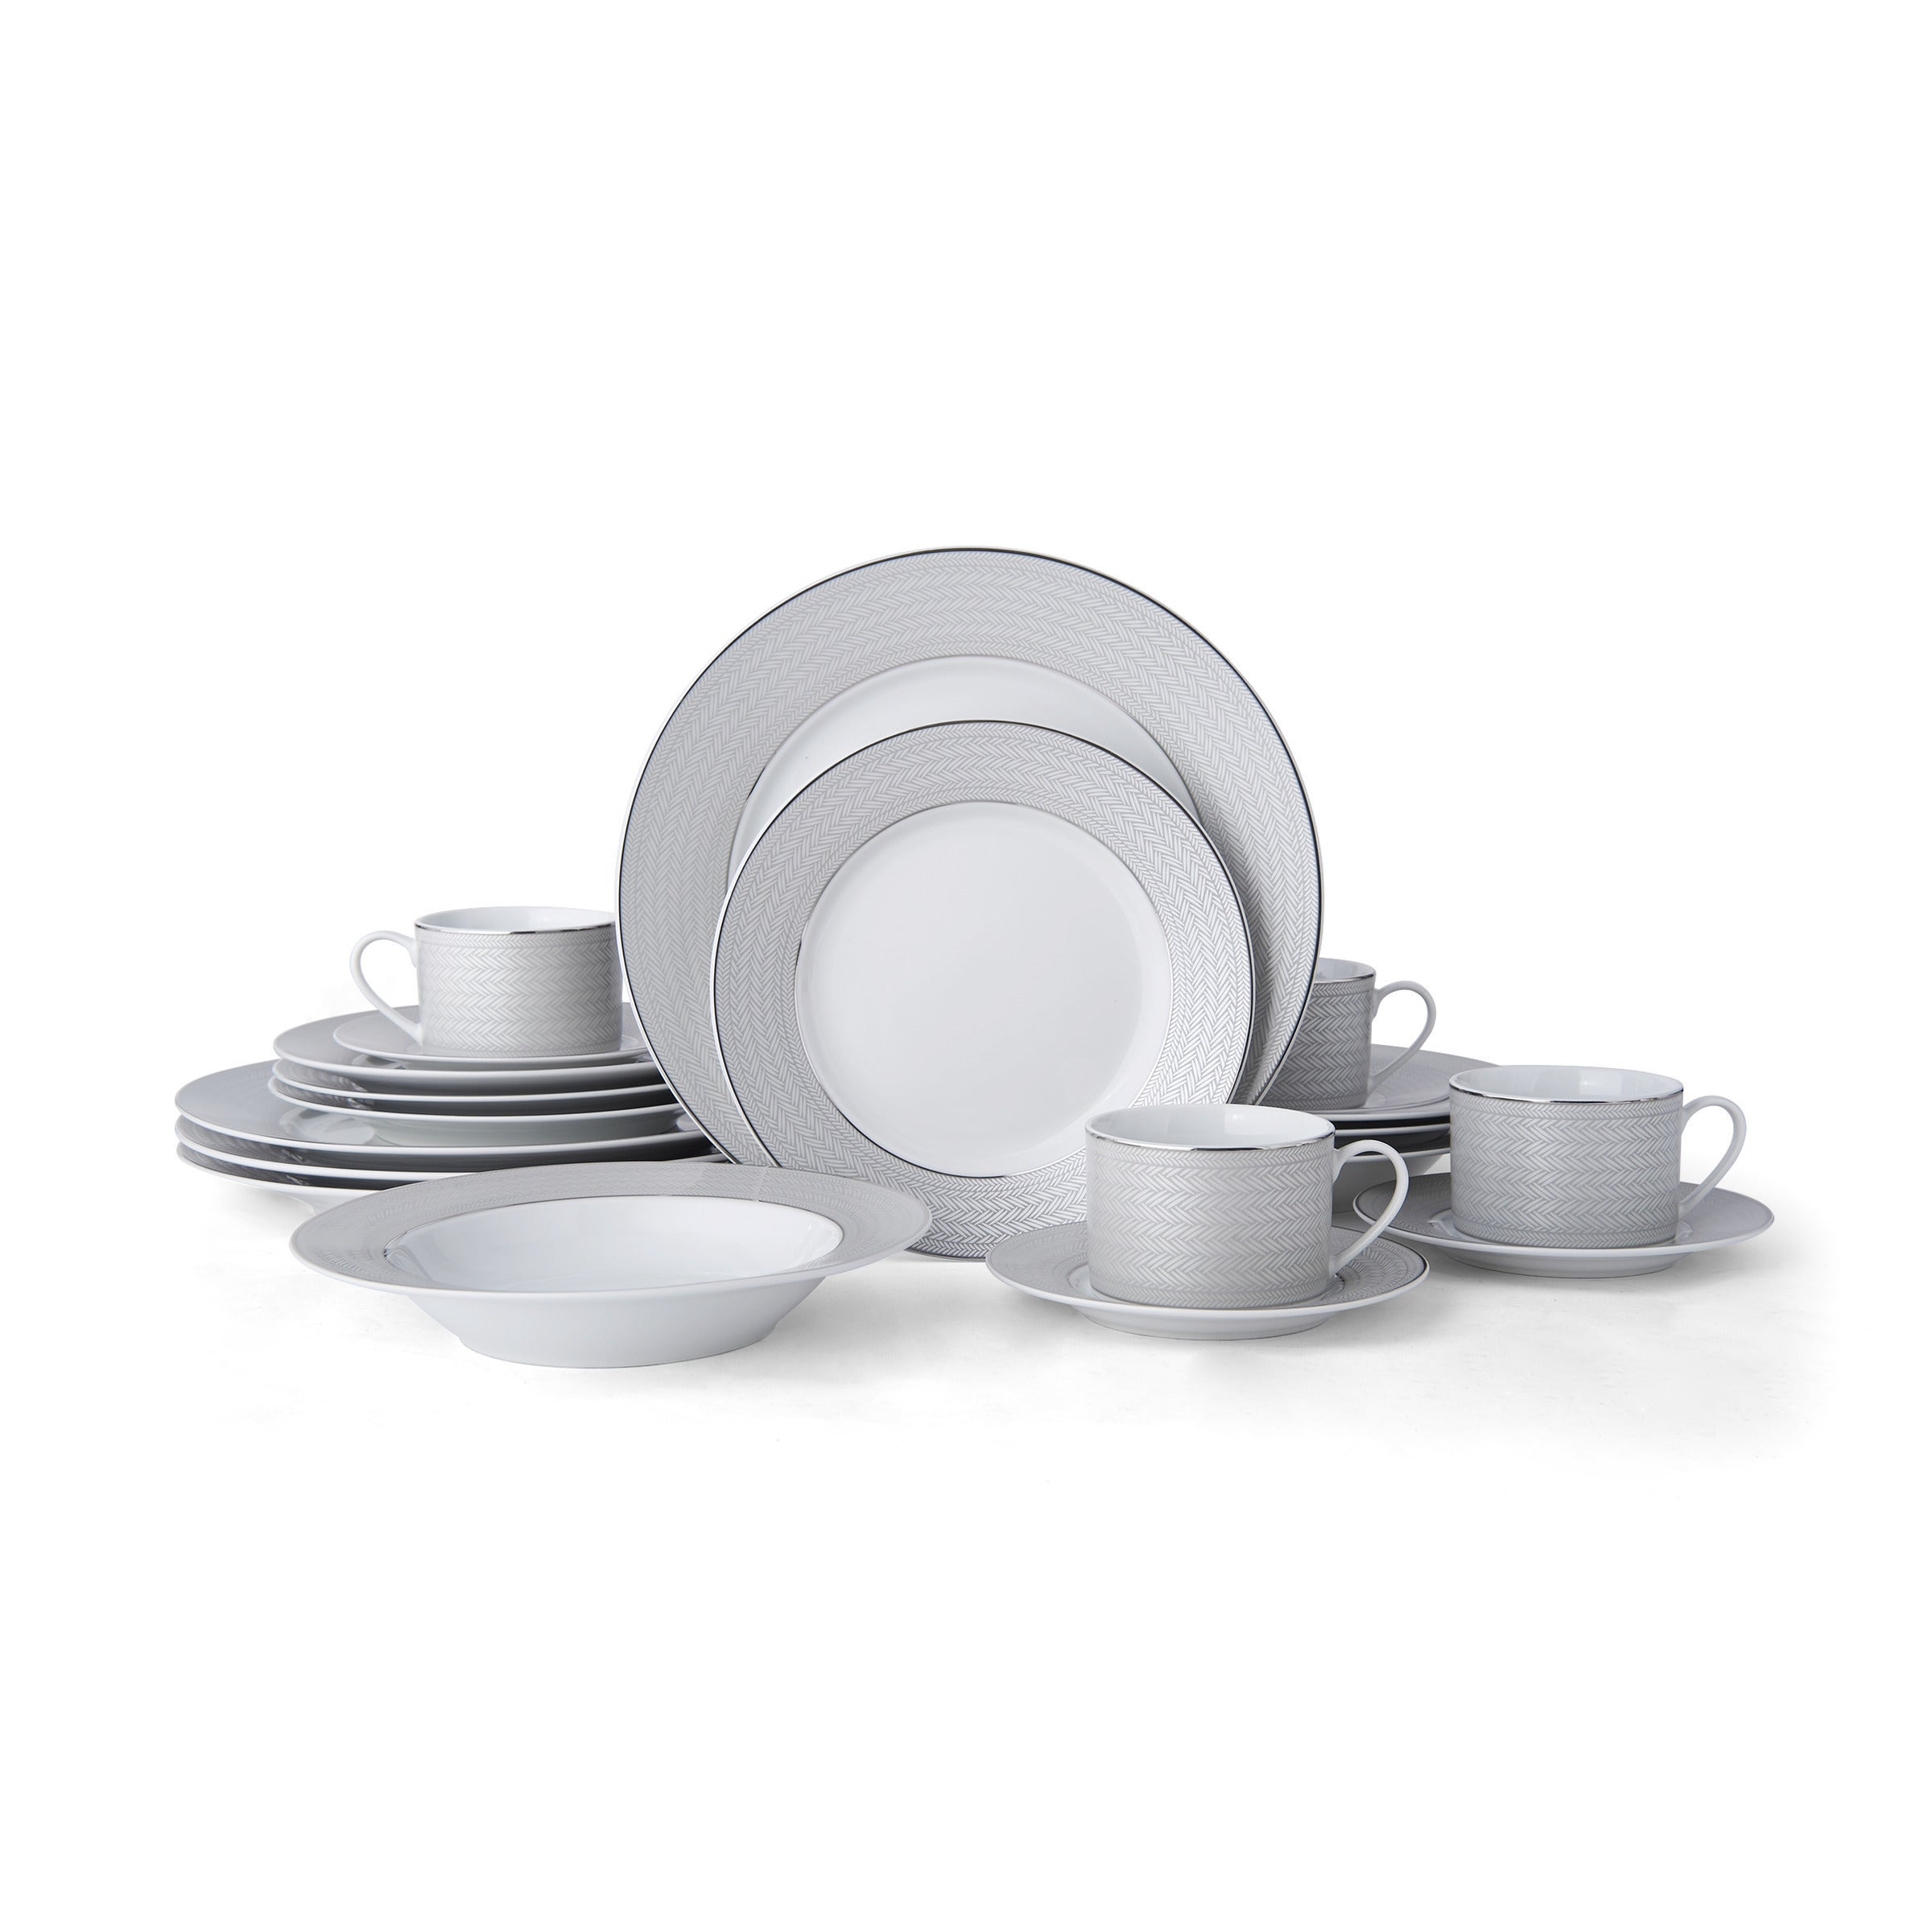 Shop Mikasa Percy Grey 20 Piece Dinnerware Set - On Sale - Free Shipping Today - Overstock.com - 21131348  sc 1 st  Overstock & Shop Mikasa Percy Grey 20 Piece Dinnerware Set - On Sale - Free ...